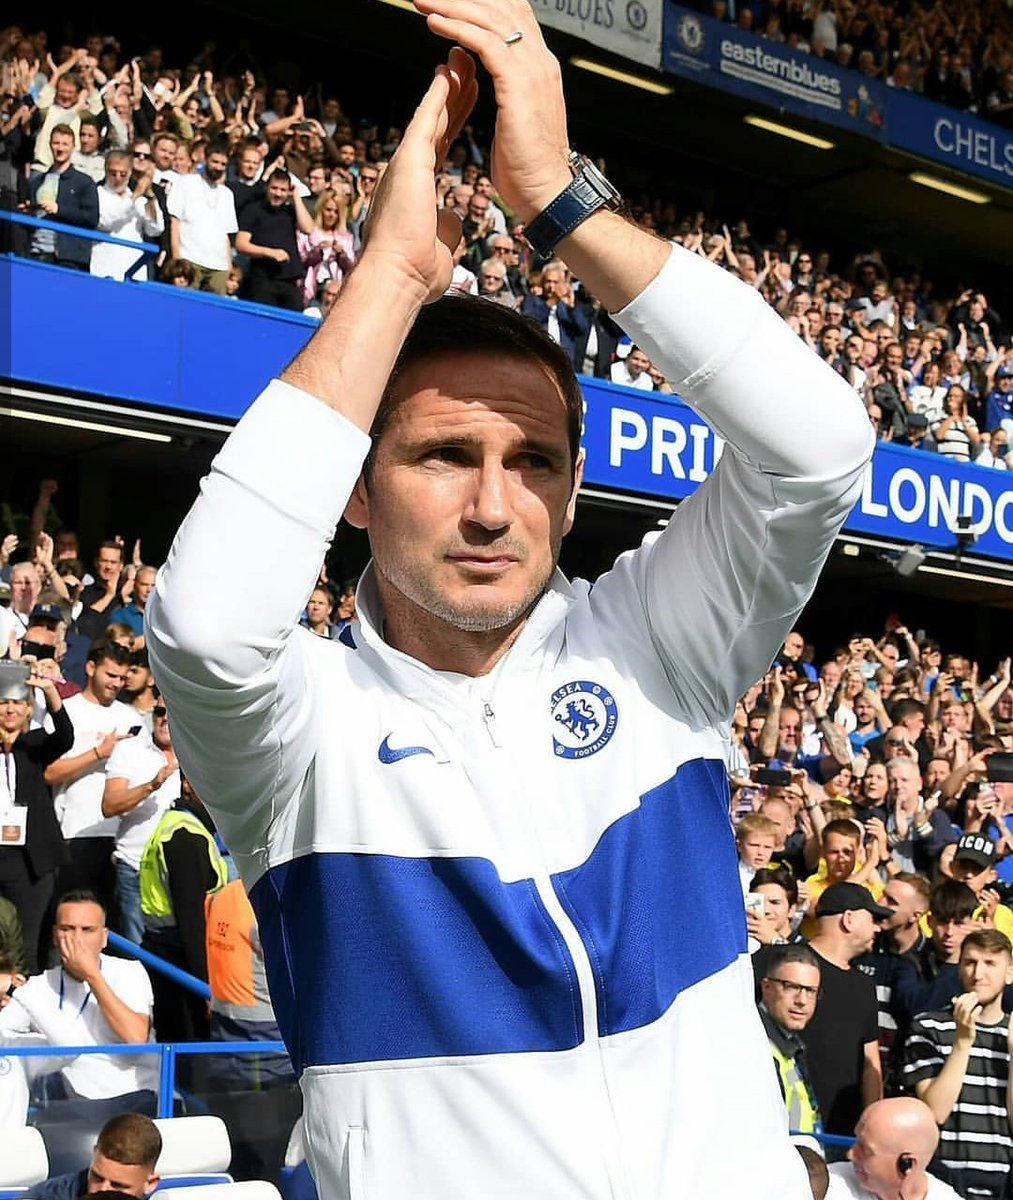 All of us fans must support Lampard and the team to the last cry and the last drop of blood ... forever Chelsea  #InFrankWeTrust<br>http://pic.twitter.com/wXQvB5OMOu